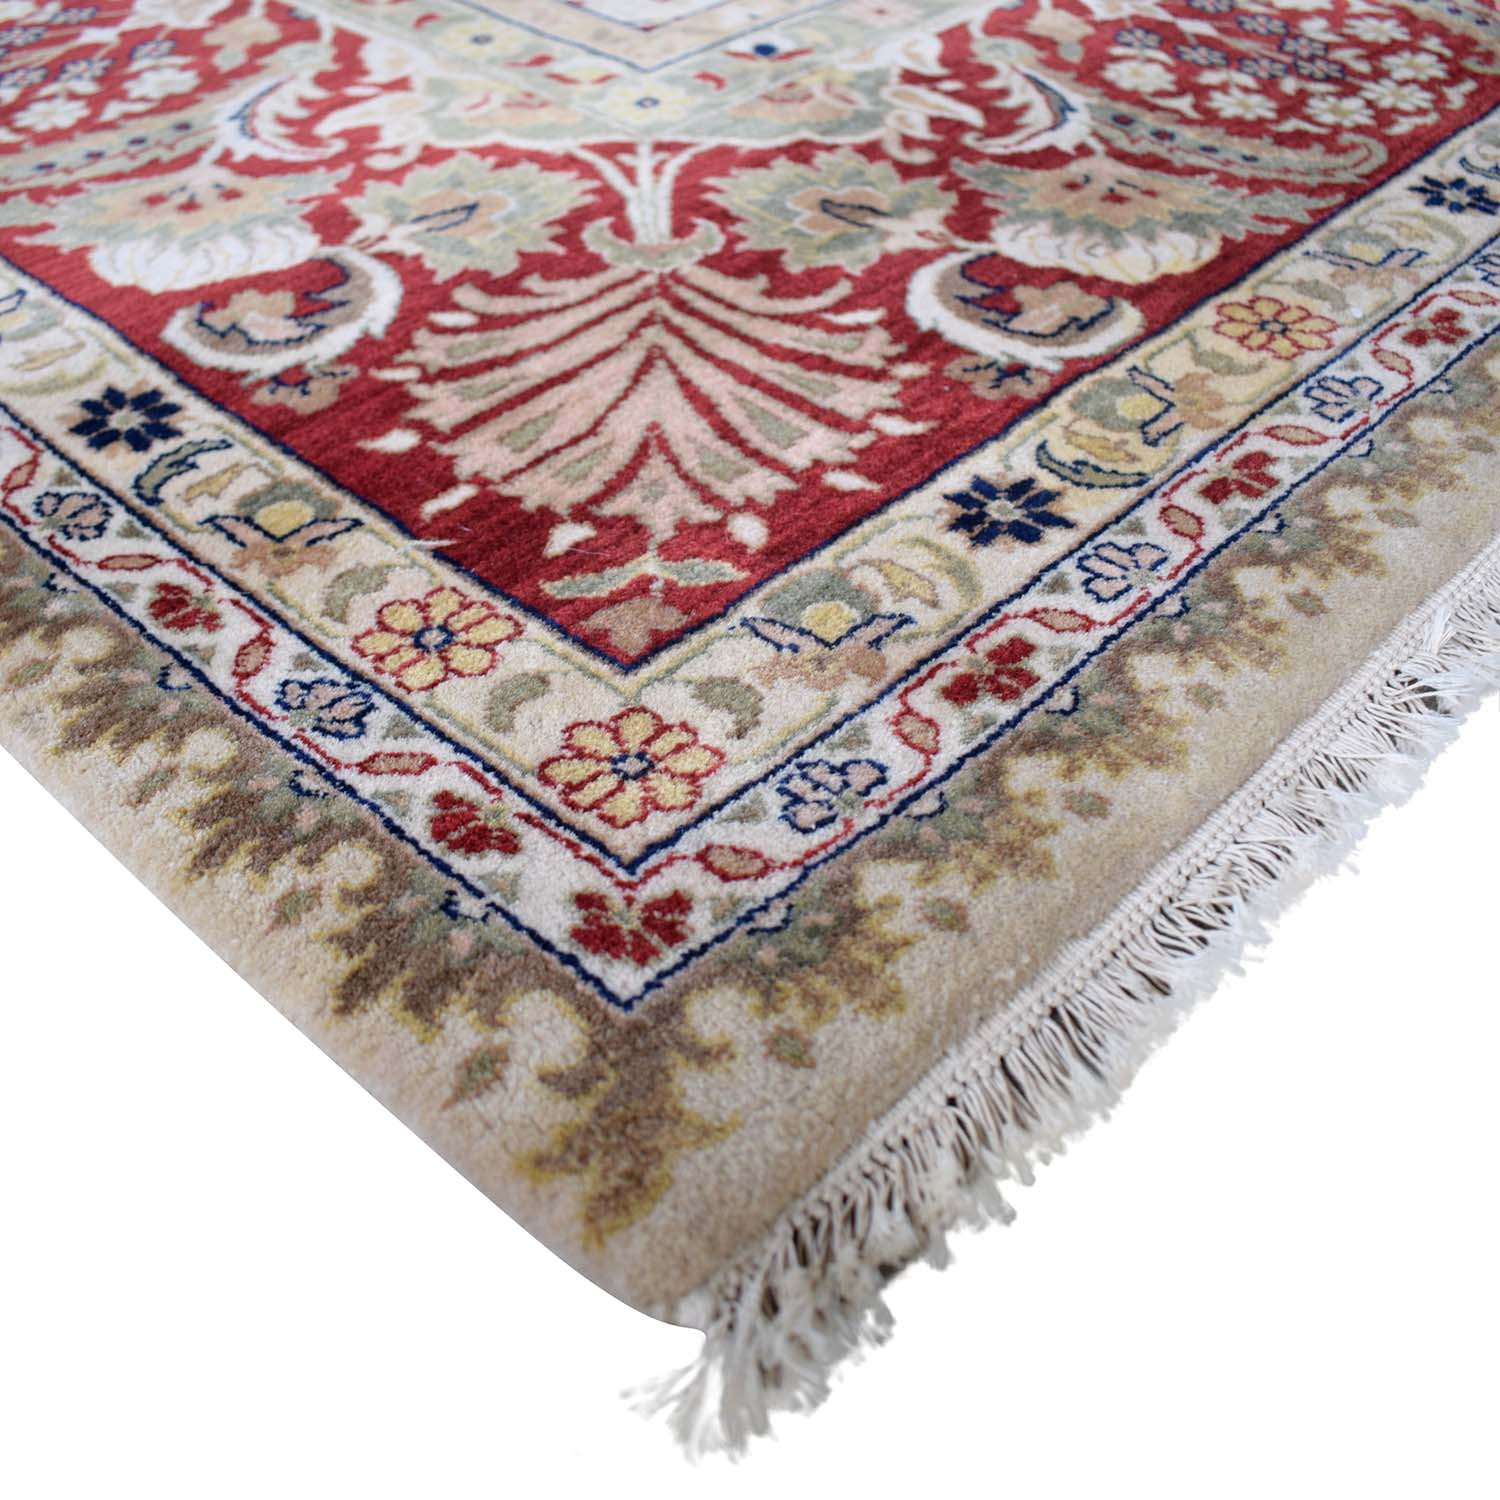 ABC Carpet & Home ABC Carpet & Home Indian Tabriz Rug price